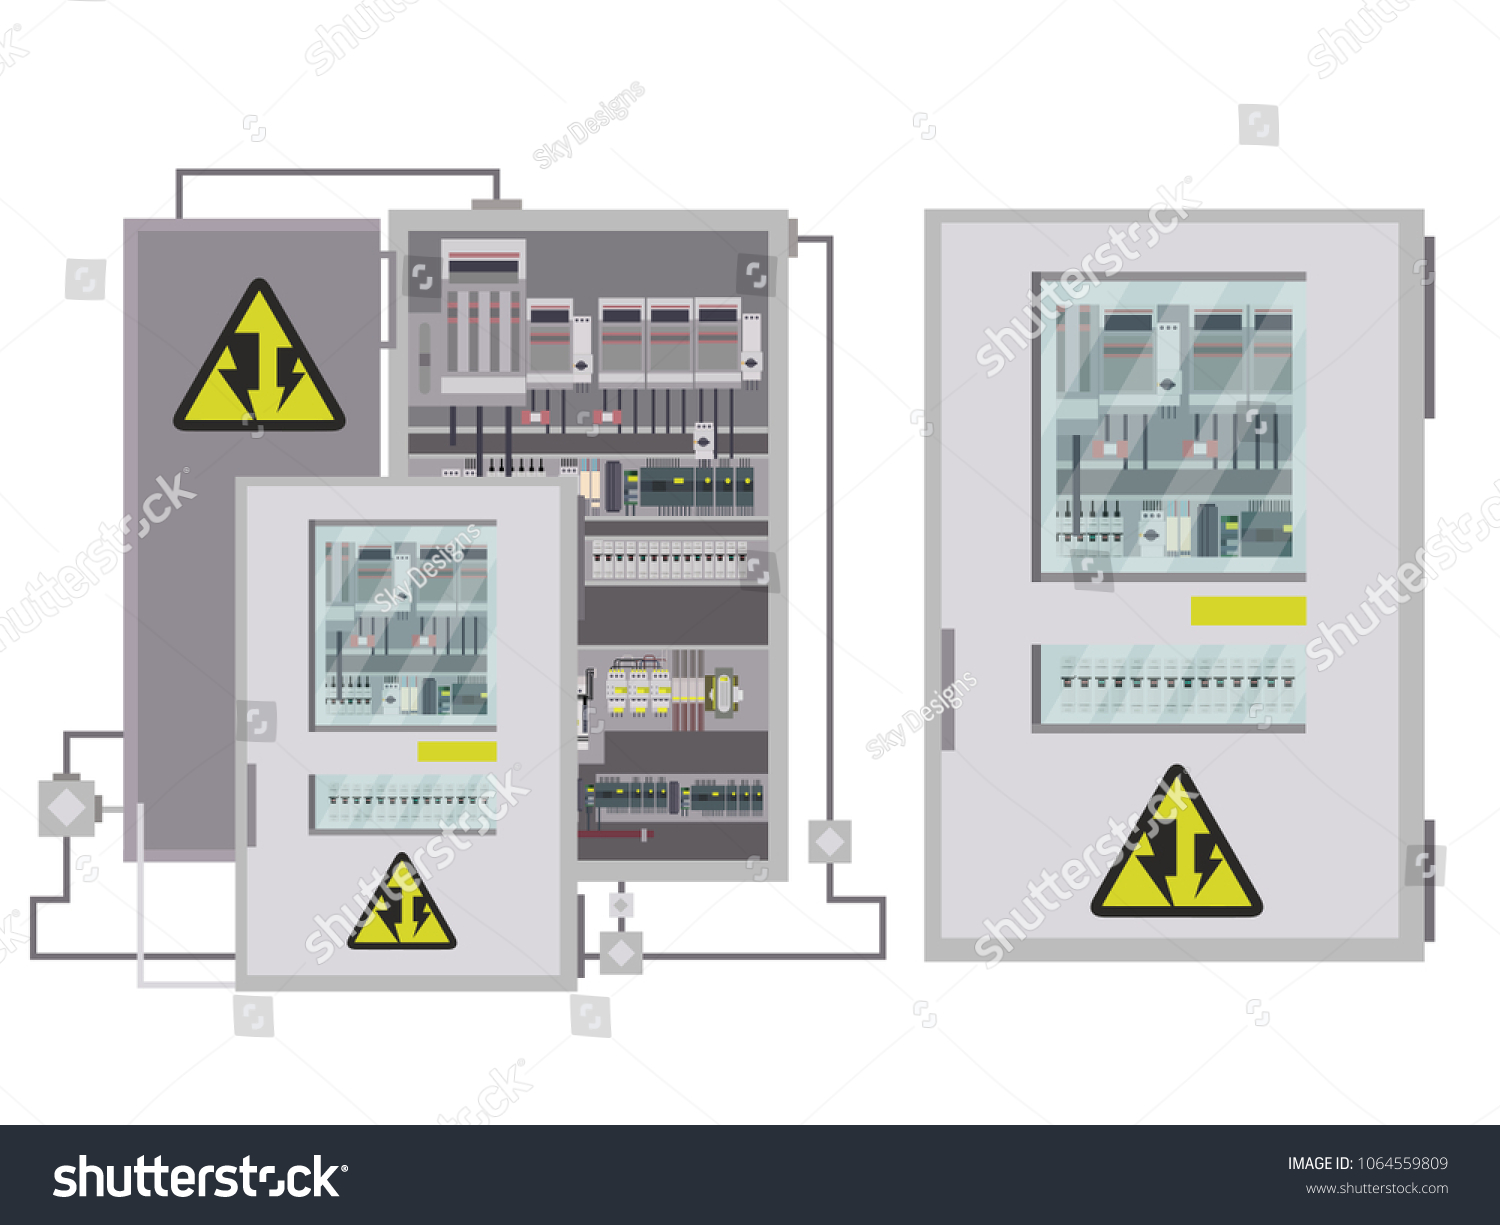 Industrial Electrical Panel Box Shop Eaton 20circuit 10space 100amp Main Breaker Load Center Value Electric Control